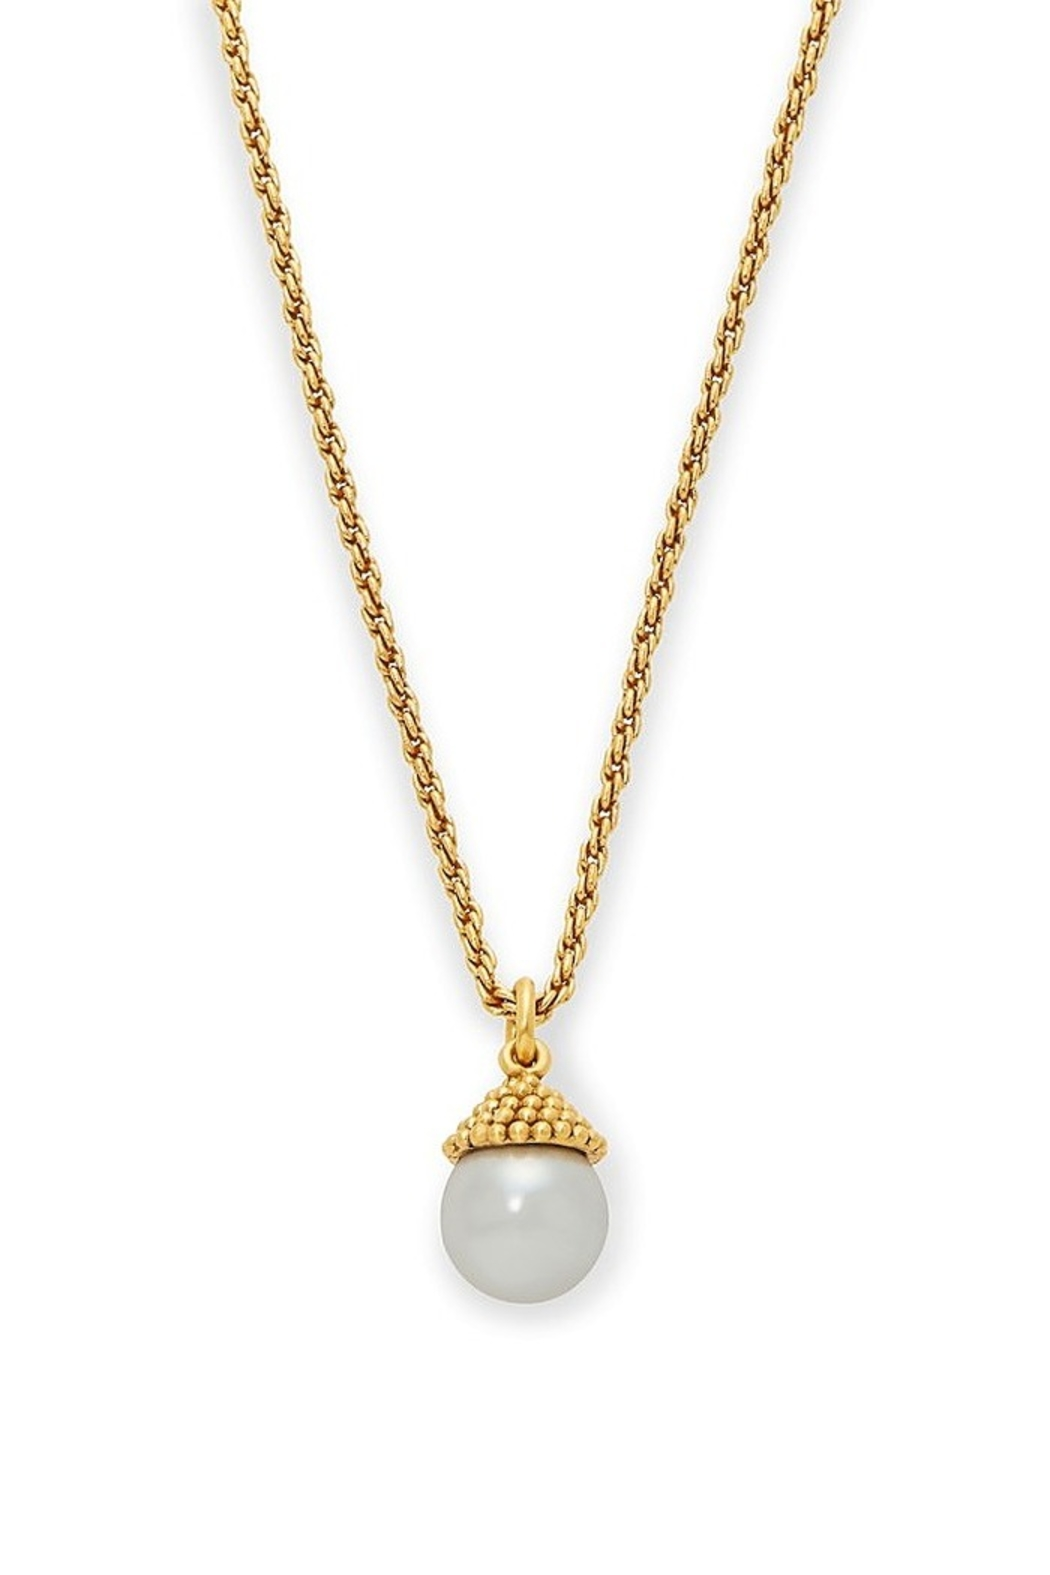 The Birds Nest Florentine Charm Necklace Gold Pearl - Main Image